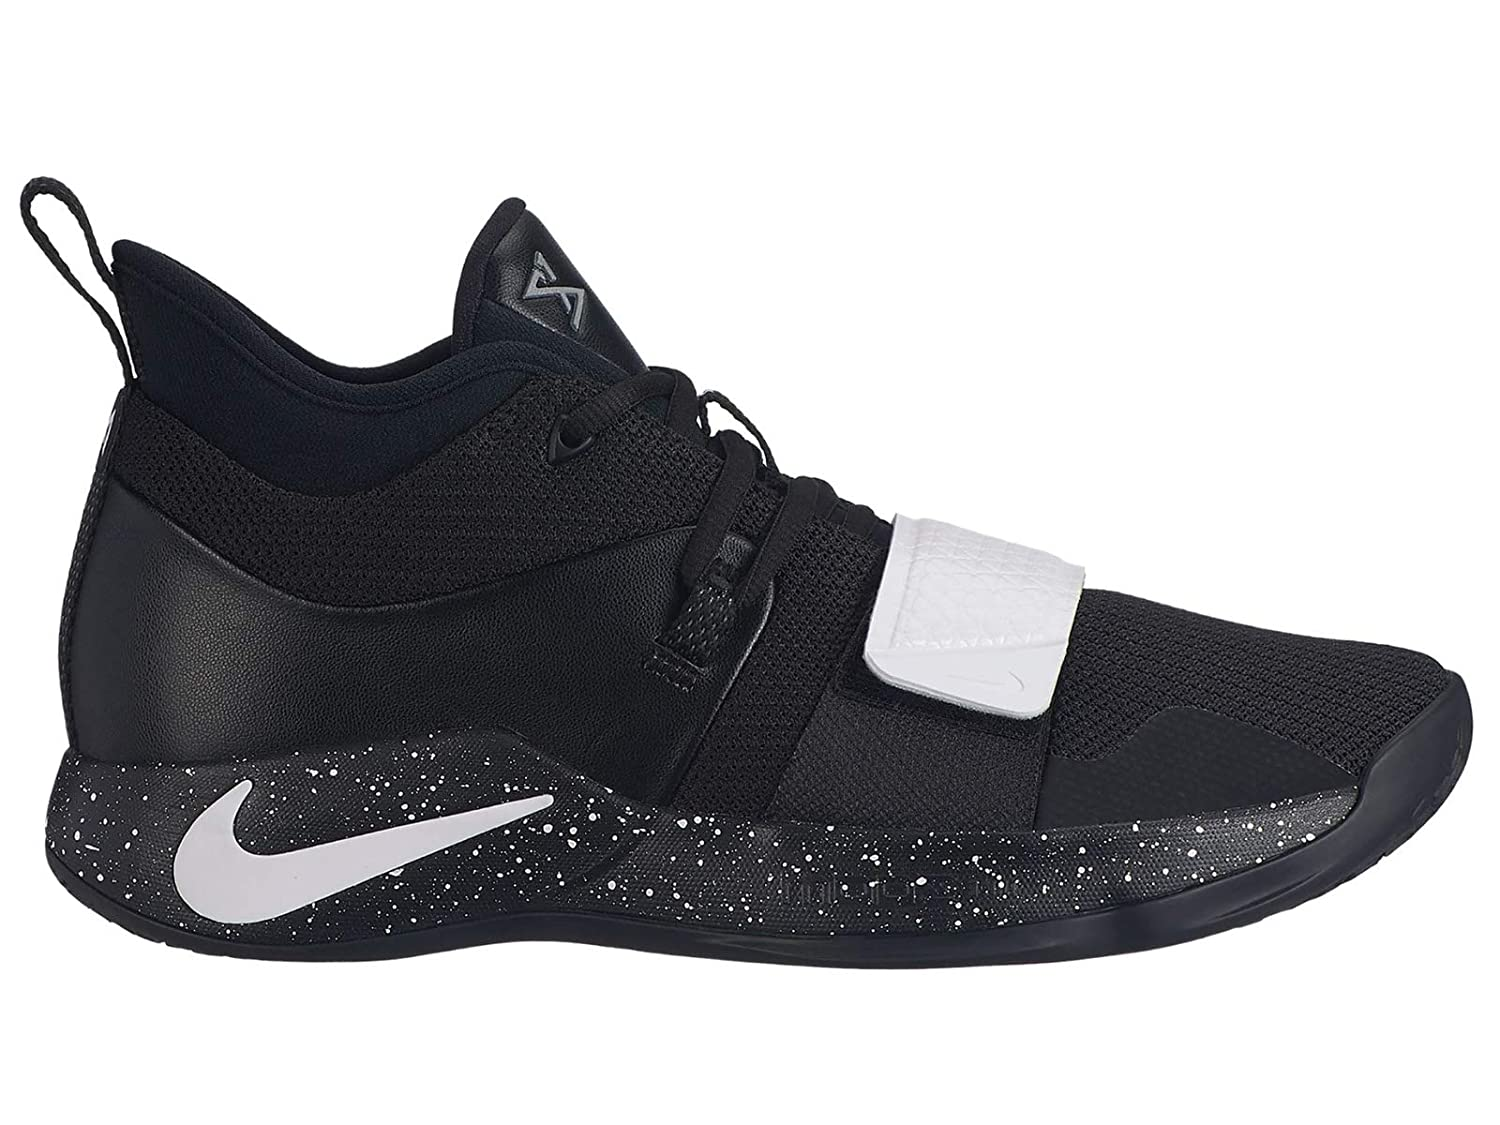 low priced 4005d 204db Nike PG 1 Mens Basketball Shoes